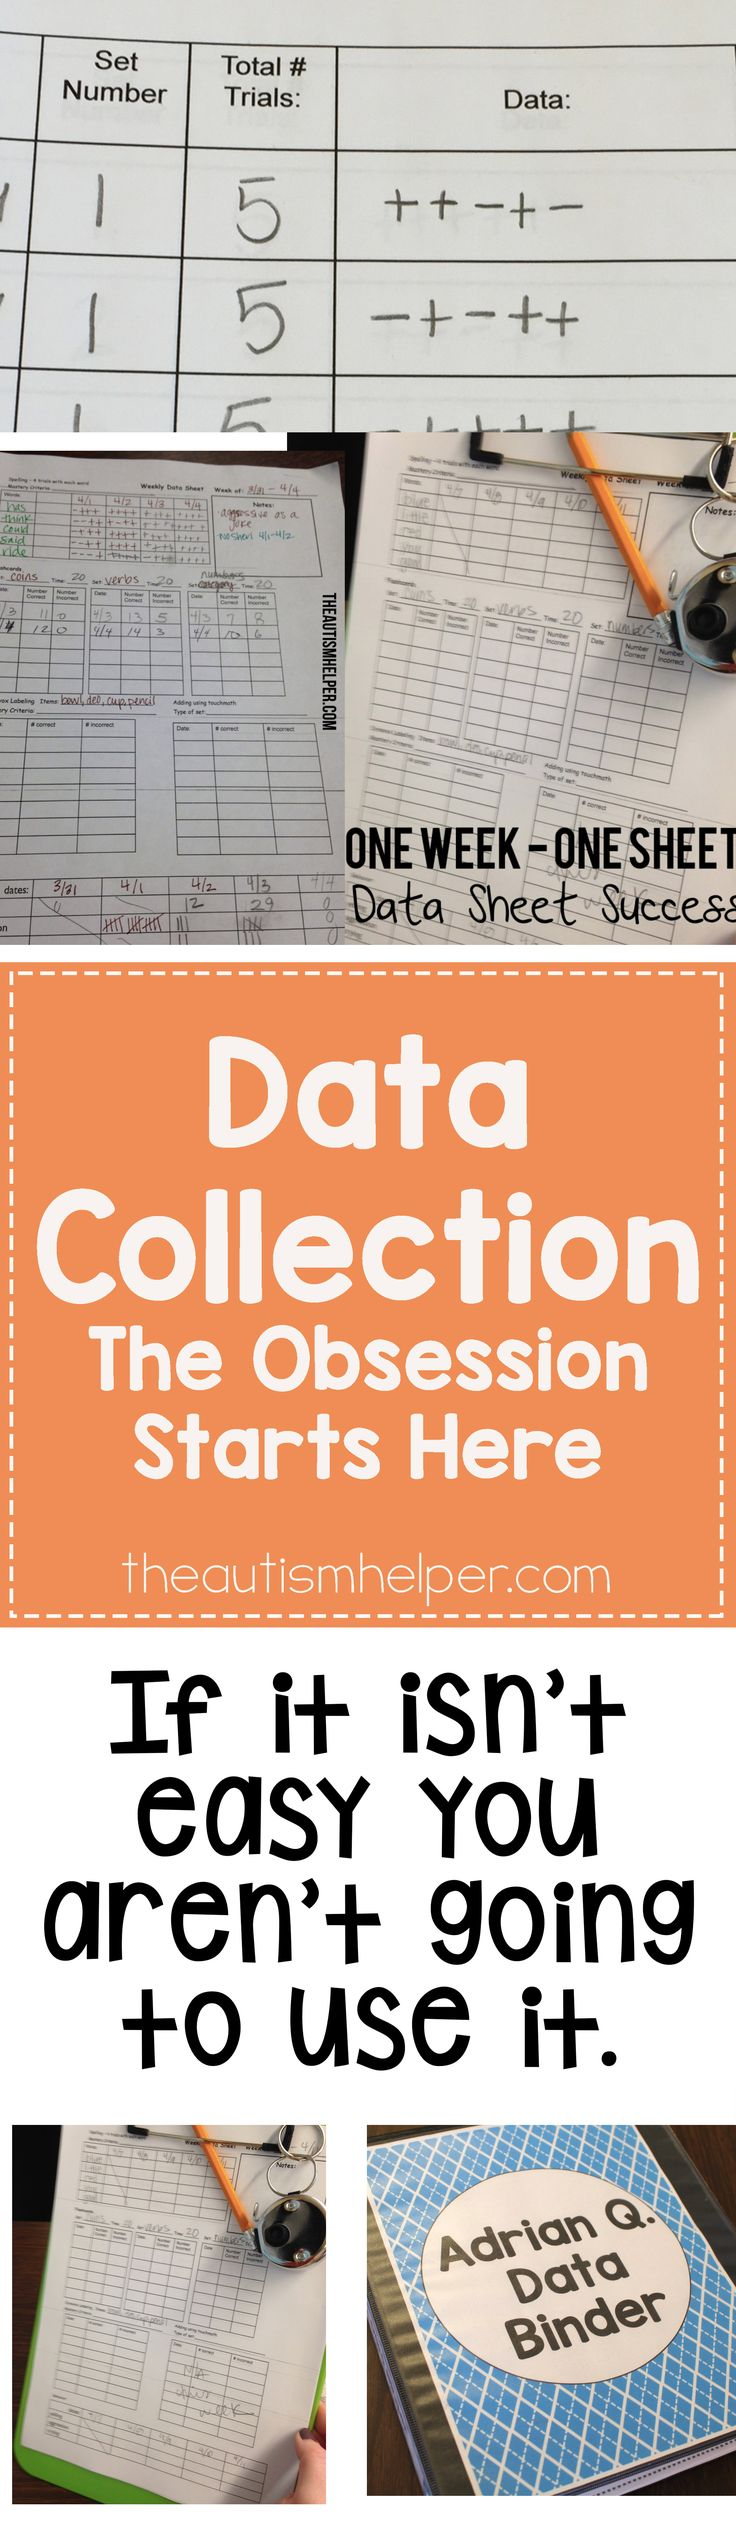 Taking data gives us the facts about what is (or isn't) working in our classroom & should drive future decisions. We're discussing the crucial role data plays & how to set up your systems!  From theautismhelper.com #theautismhelper